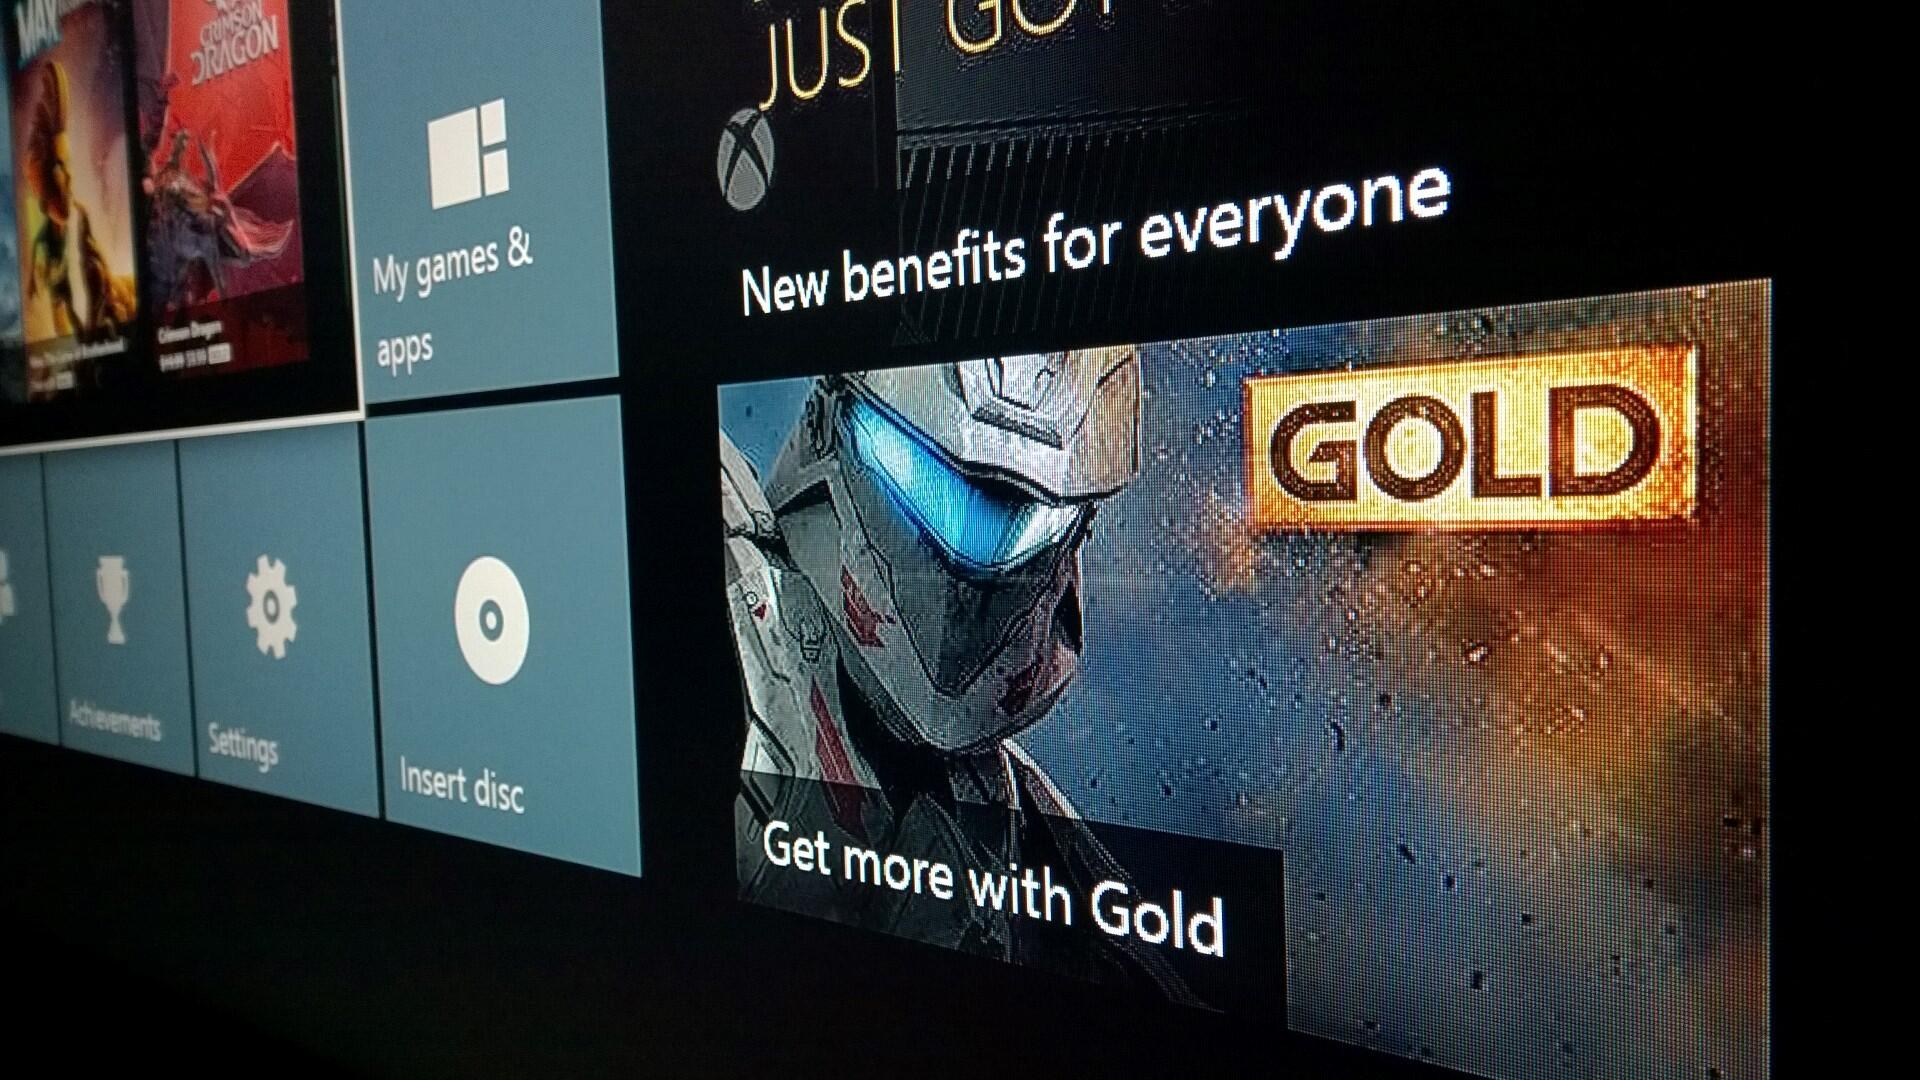 Get more with Gold